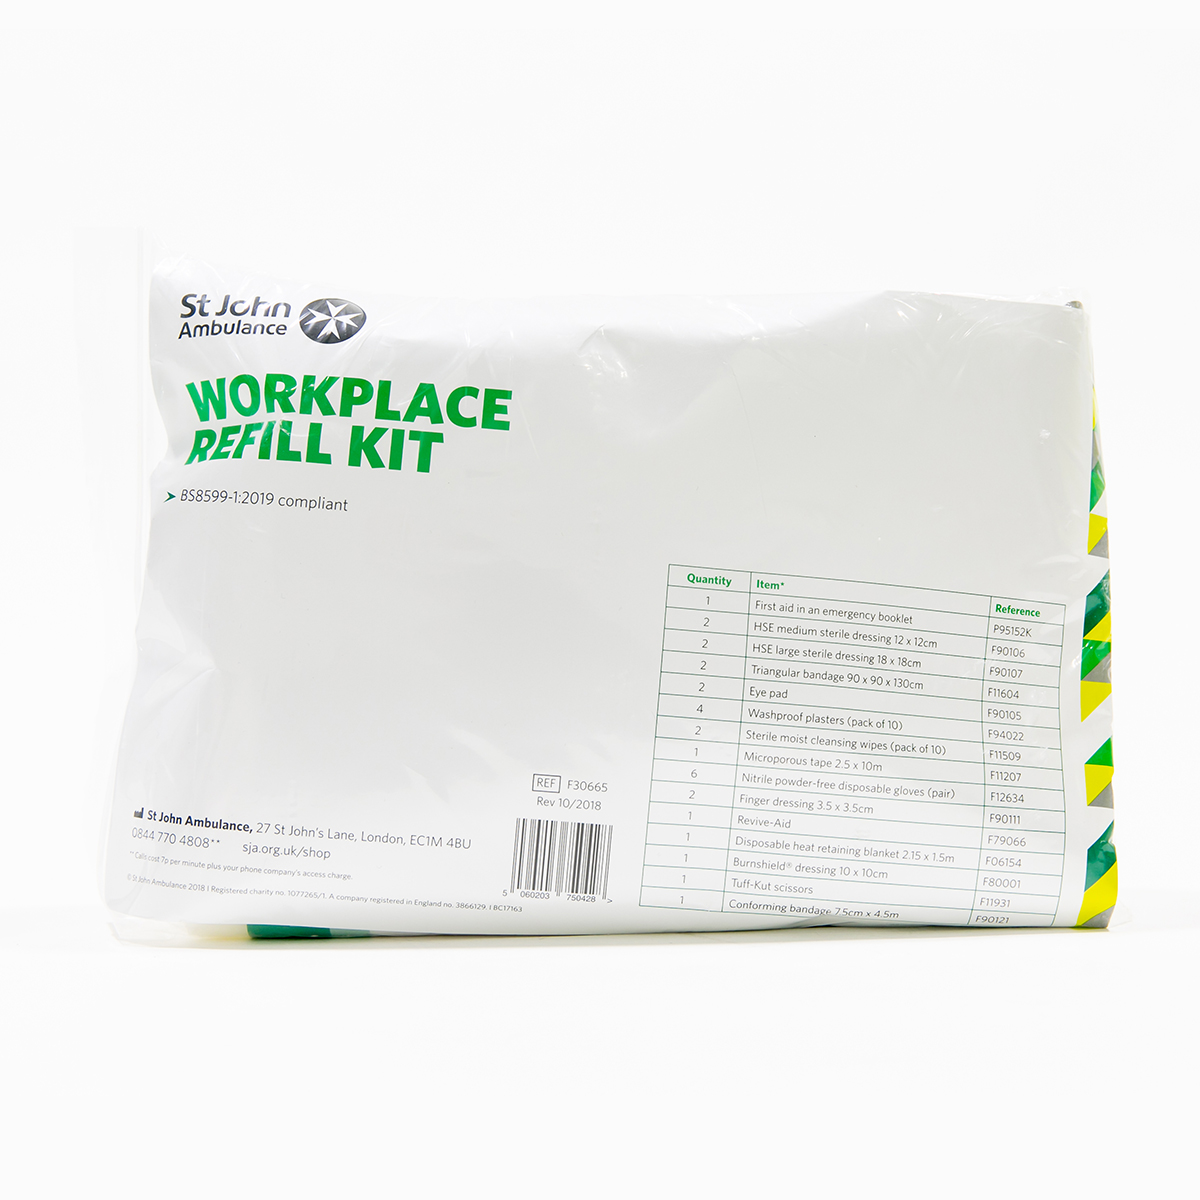 St John Ambulance Workplace Refill First Aid Kit BS 8599-1:2019